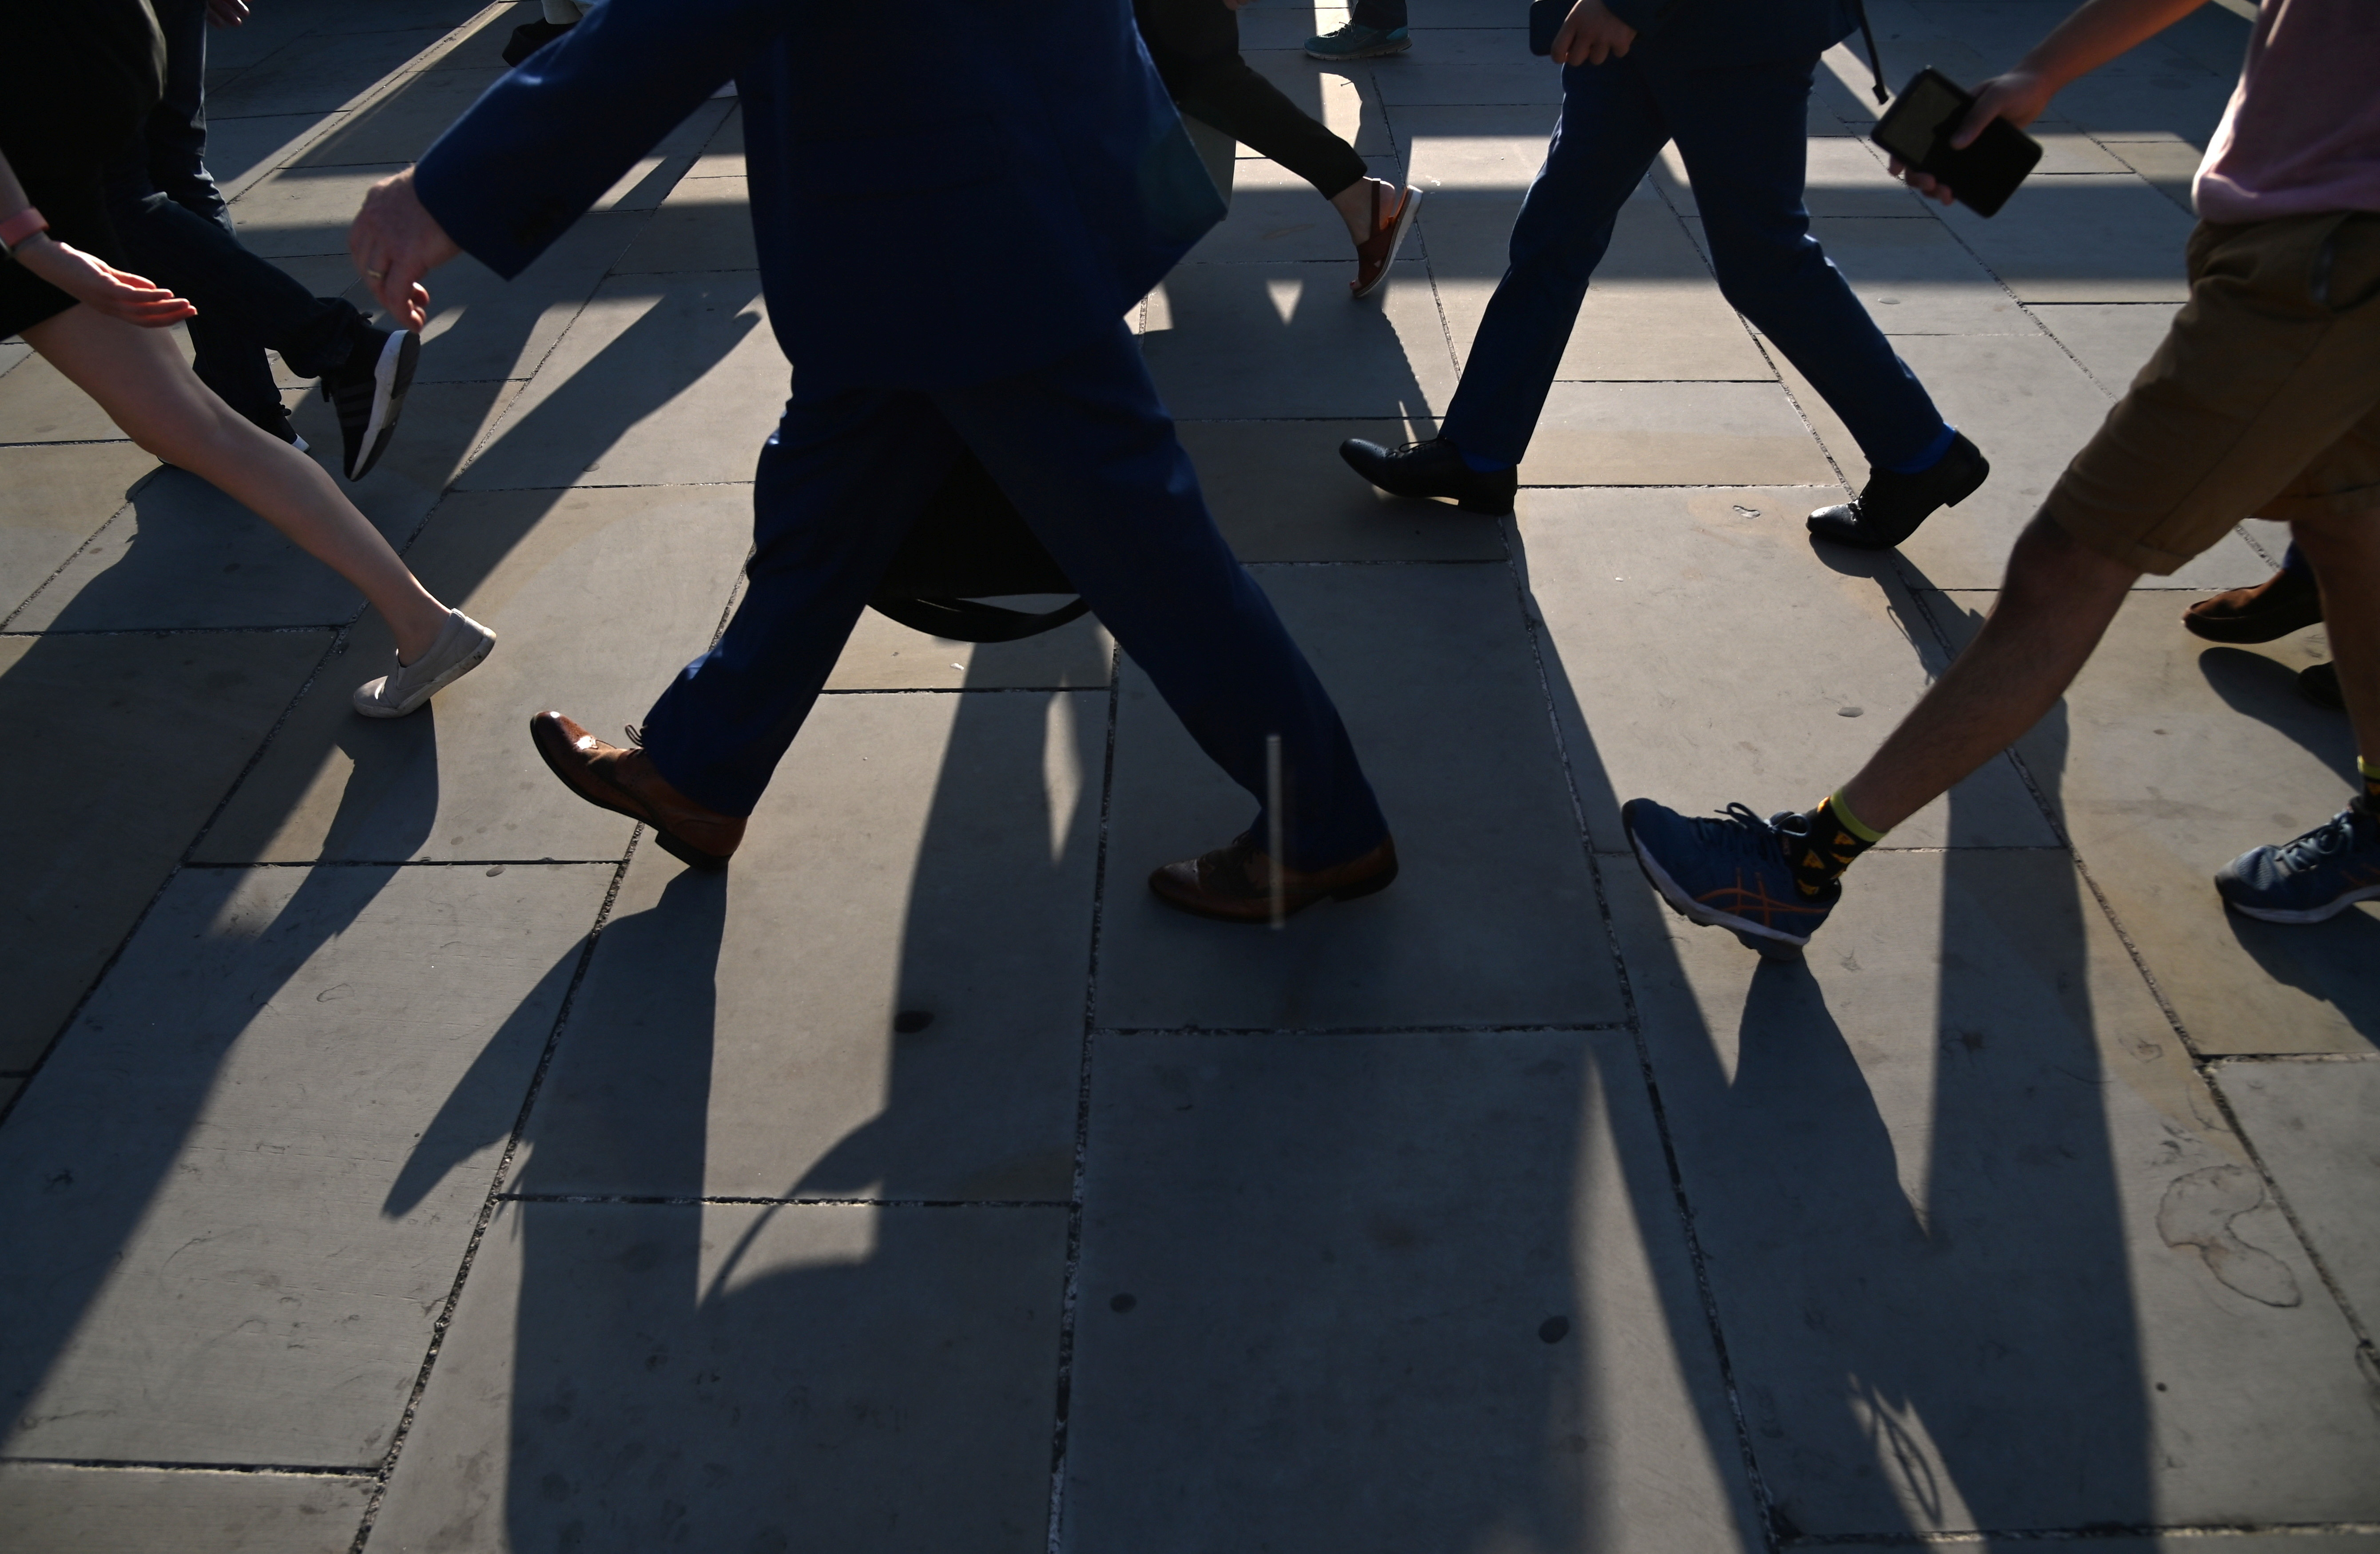 Workers cross London Bridge during the morning rush hour in London, Britain, September 8, 2021. REUTERS/Toby Melville - RC2KLP9SK2PX